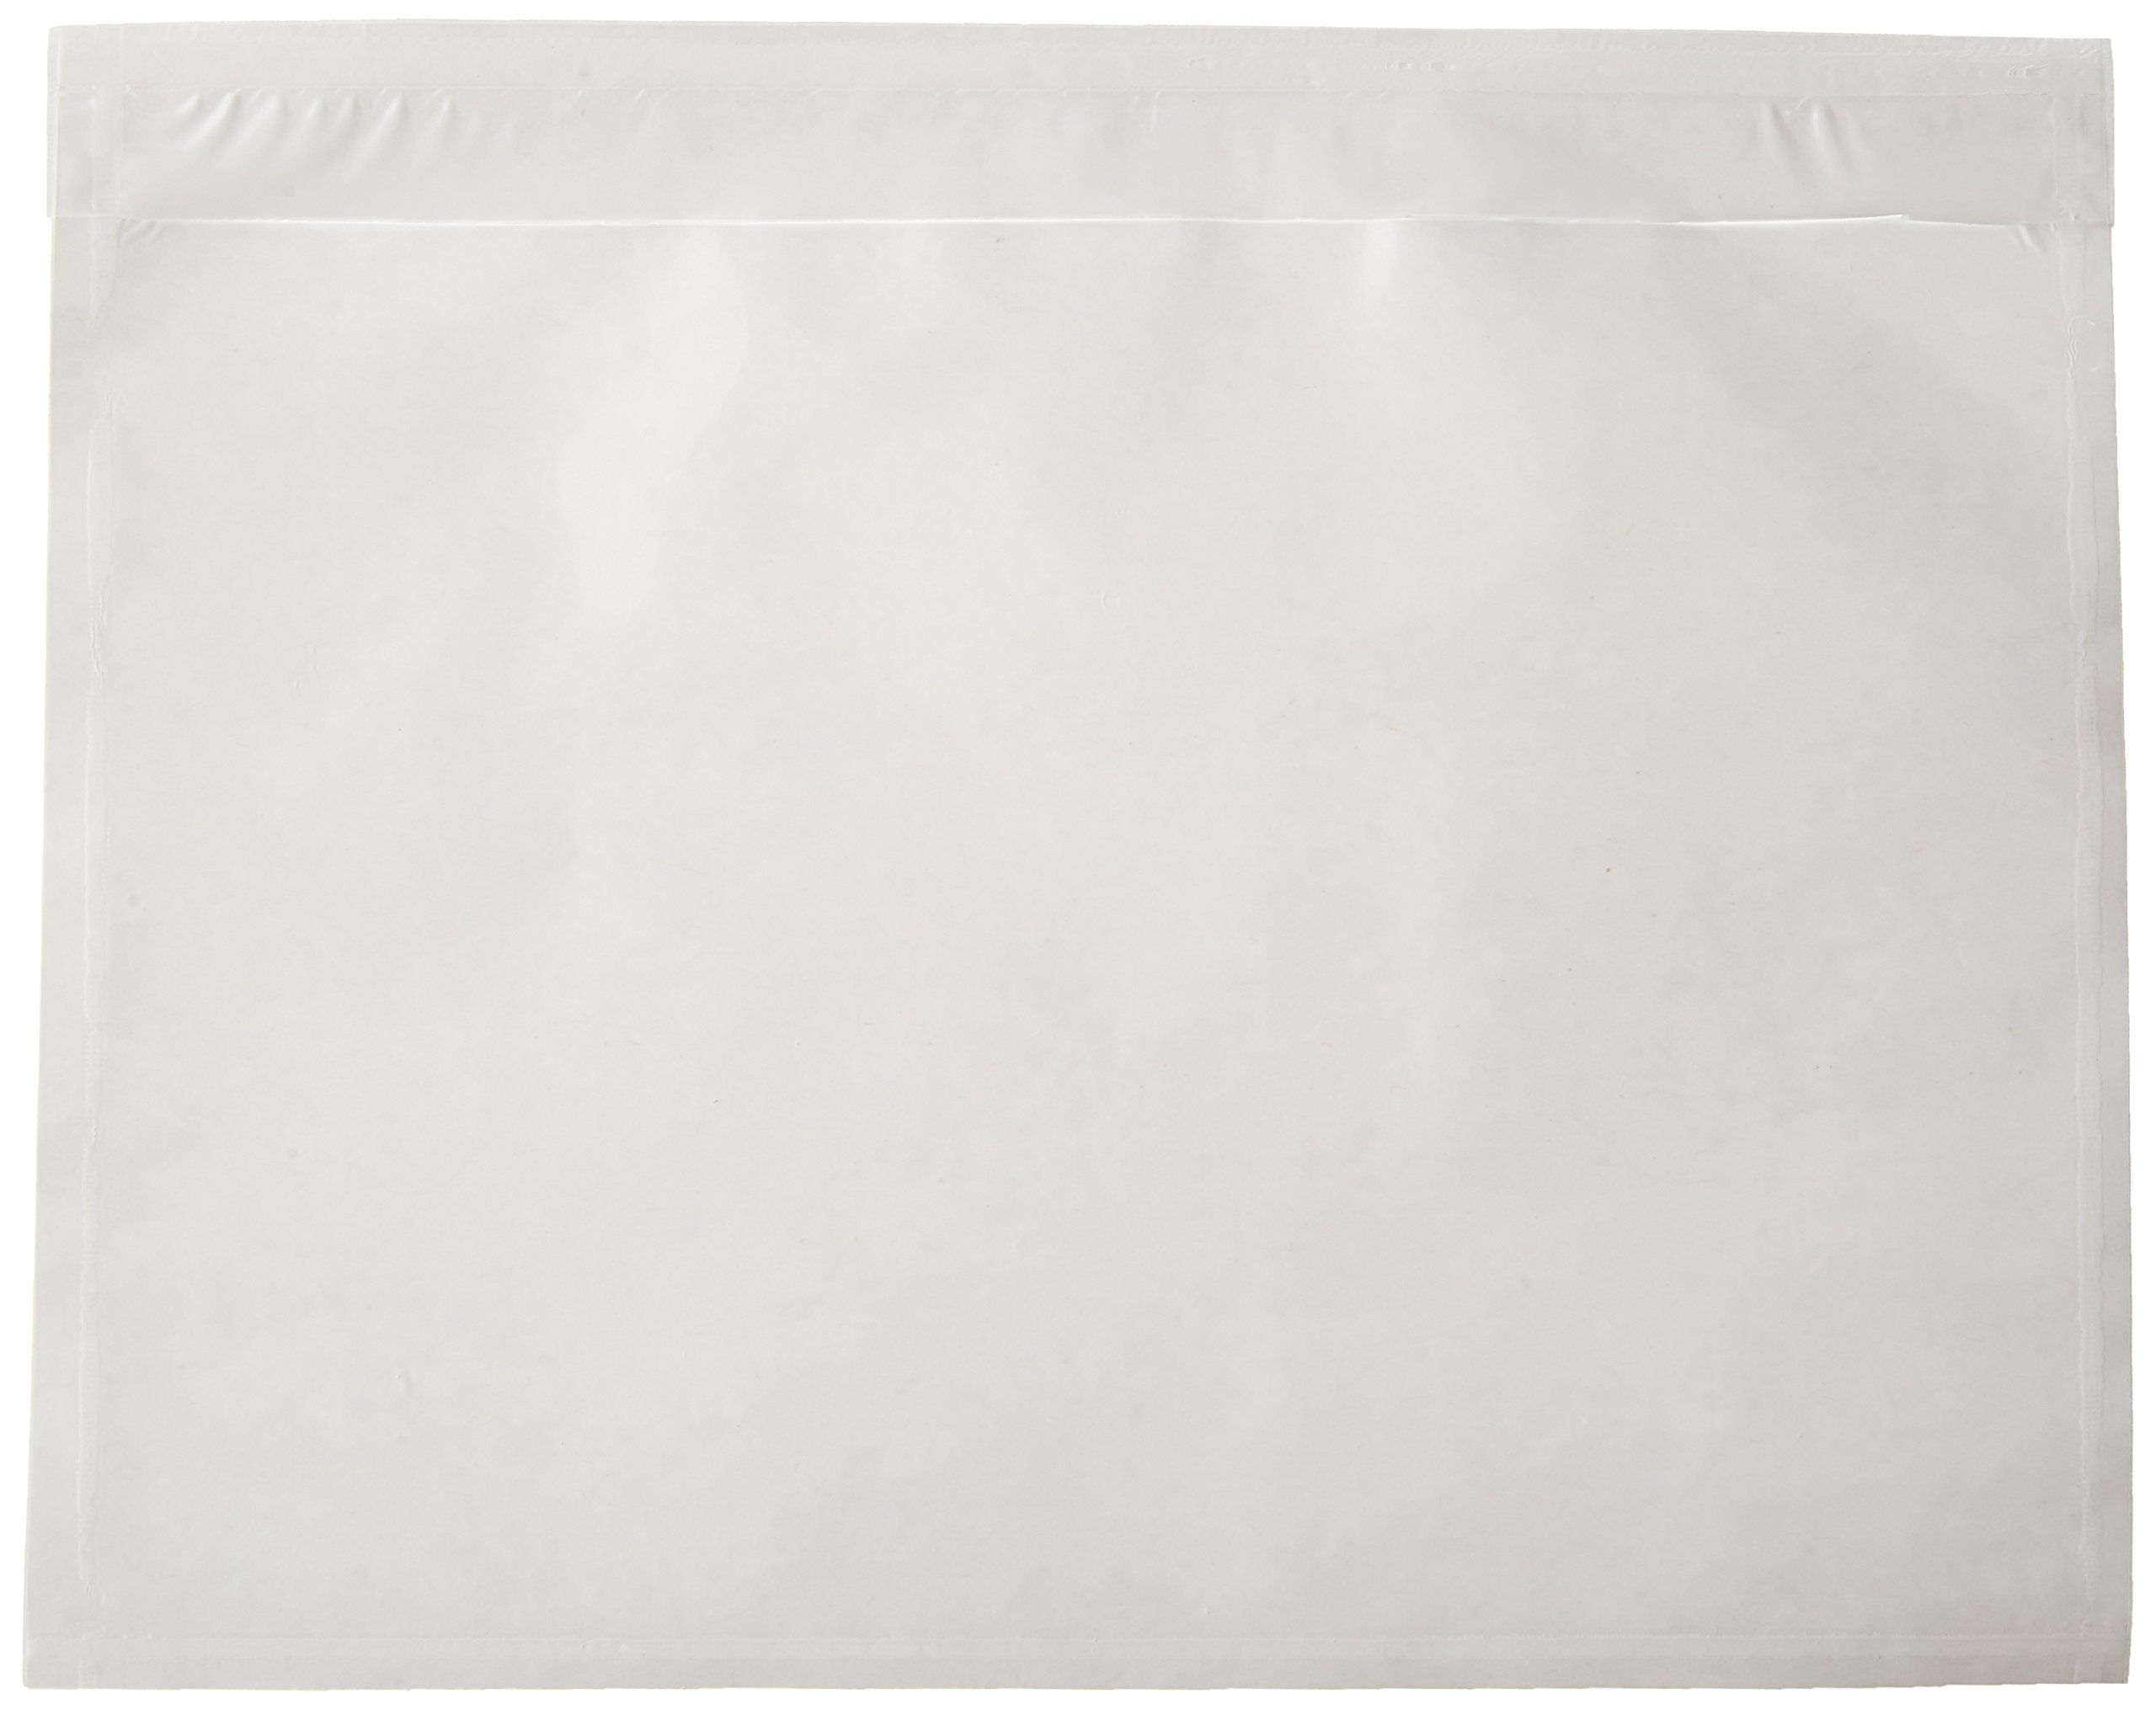 NE IMAGE - 7.5'' x 5.5'' - Clear Adhesive Back - Packing List/Shipping Label Envelope Pouches (100pk)